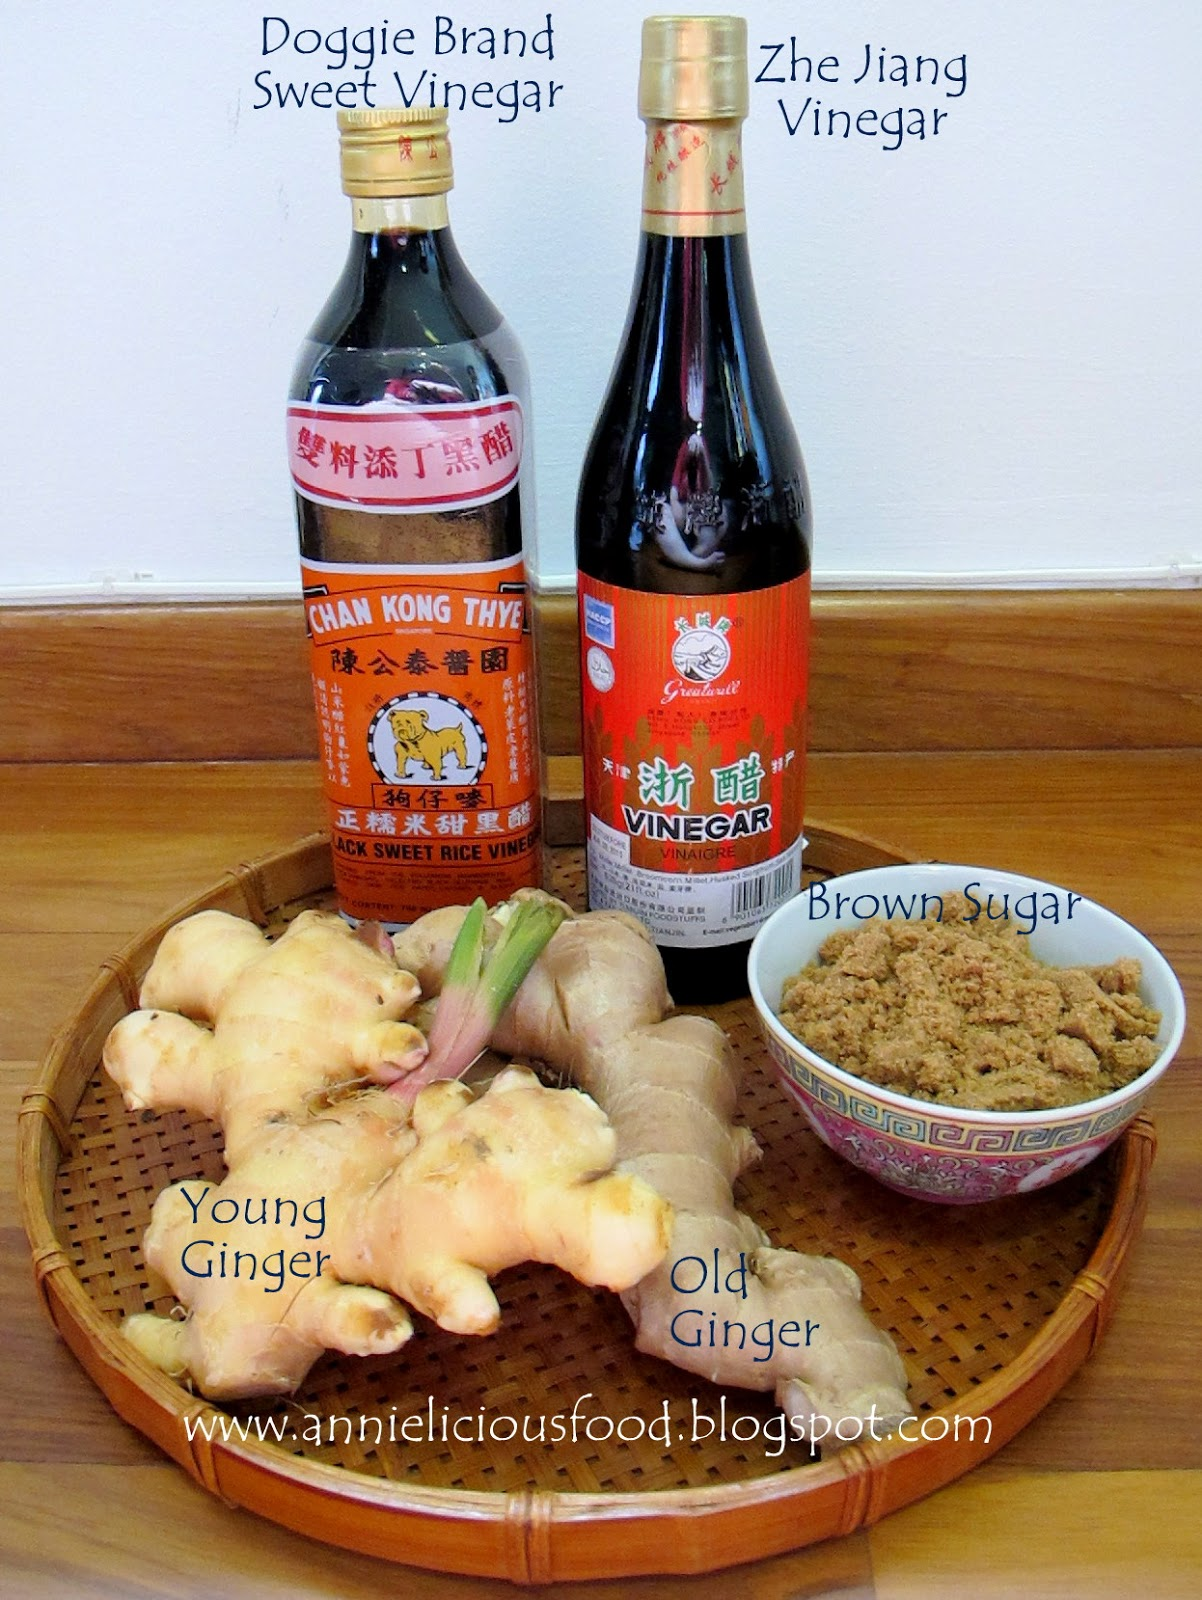 Annielicious food mdm chais pig trotter in vinegar with ginger annielicious food mdm chais pig trotter in vinegar with ginger forumfinder